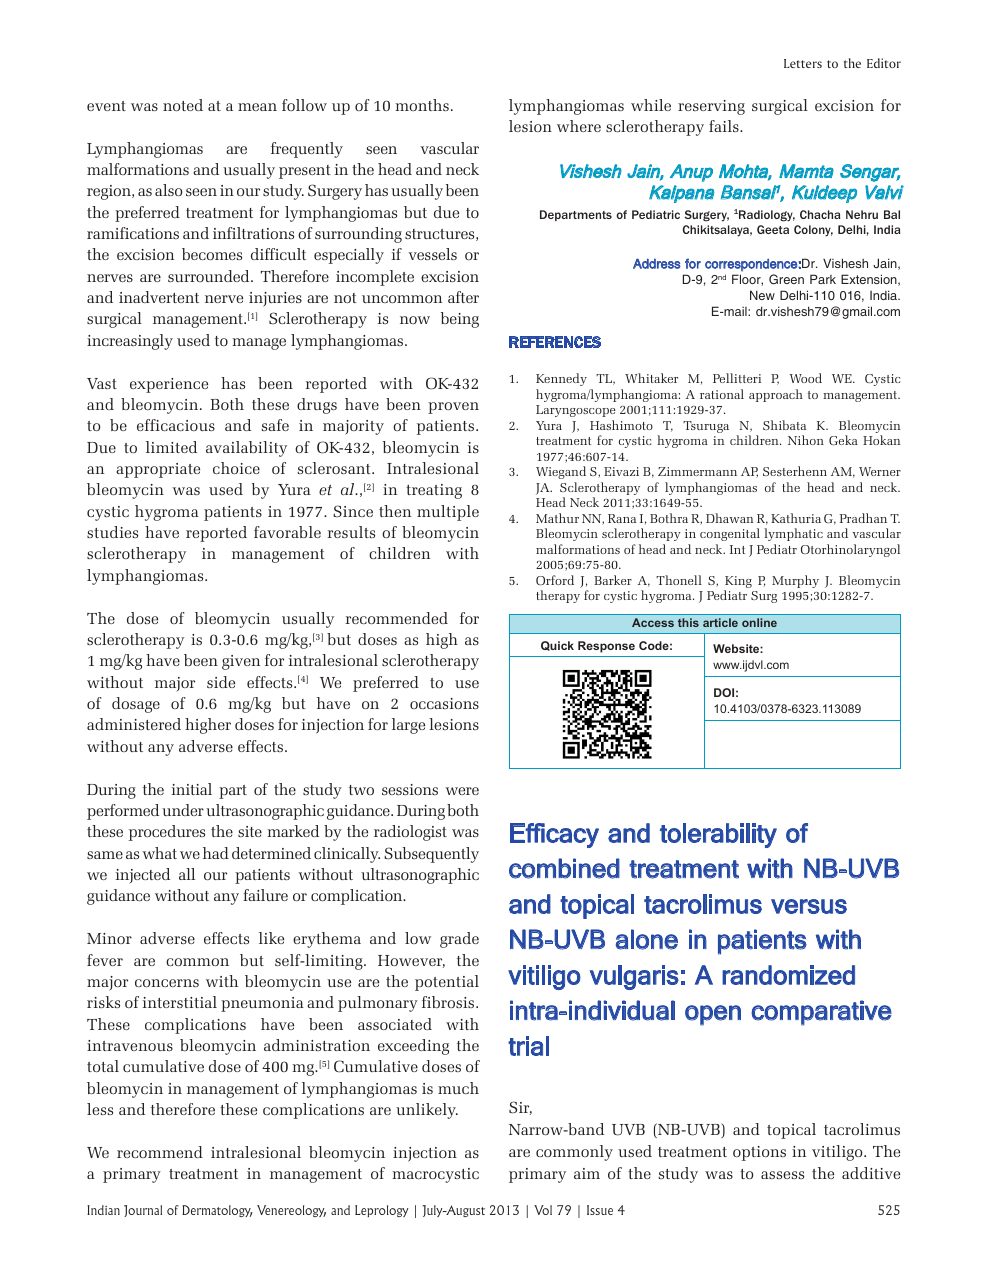 Efficacy and tolerability of combined treatment with NB-UVB